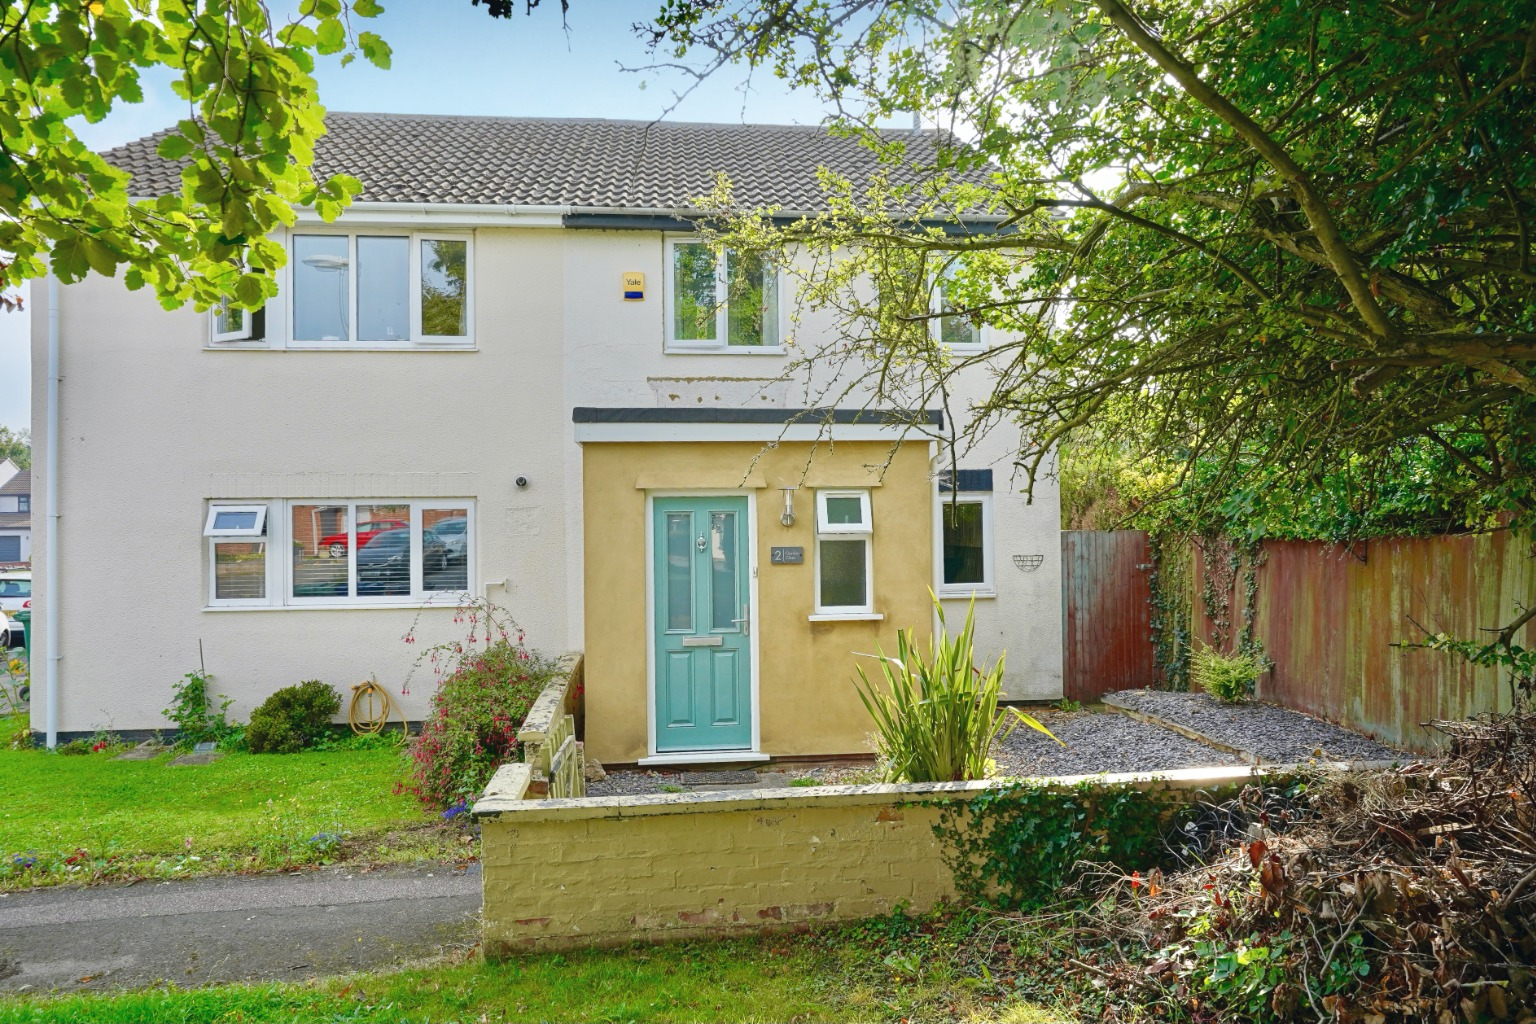 3 bed semi-detached house for sale in Gordon Close, St. Neots  - Property Image 1